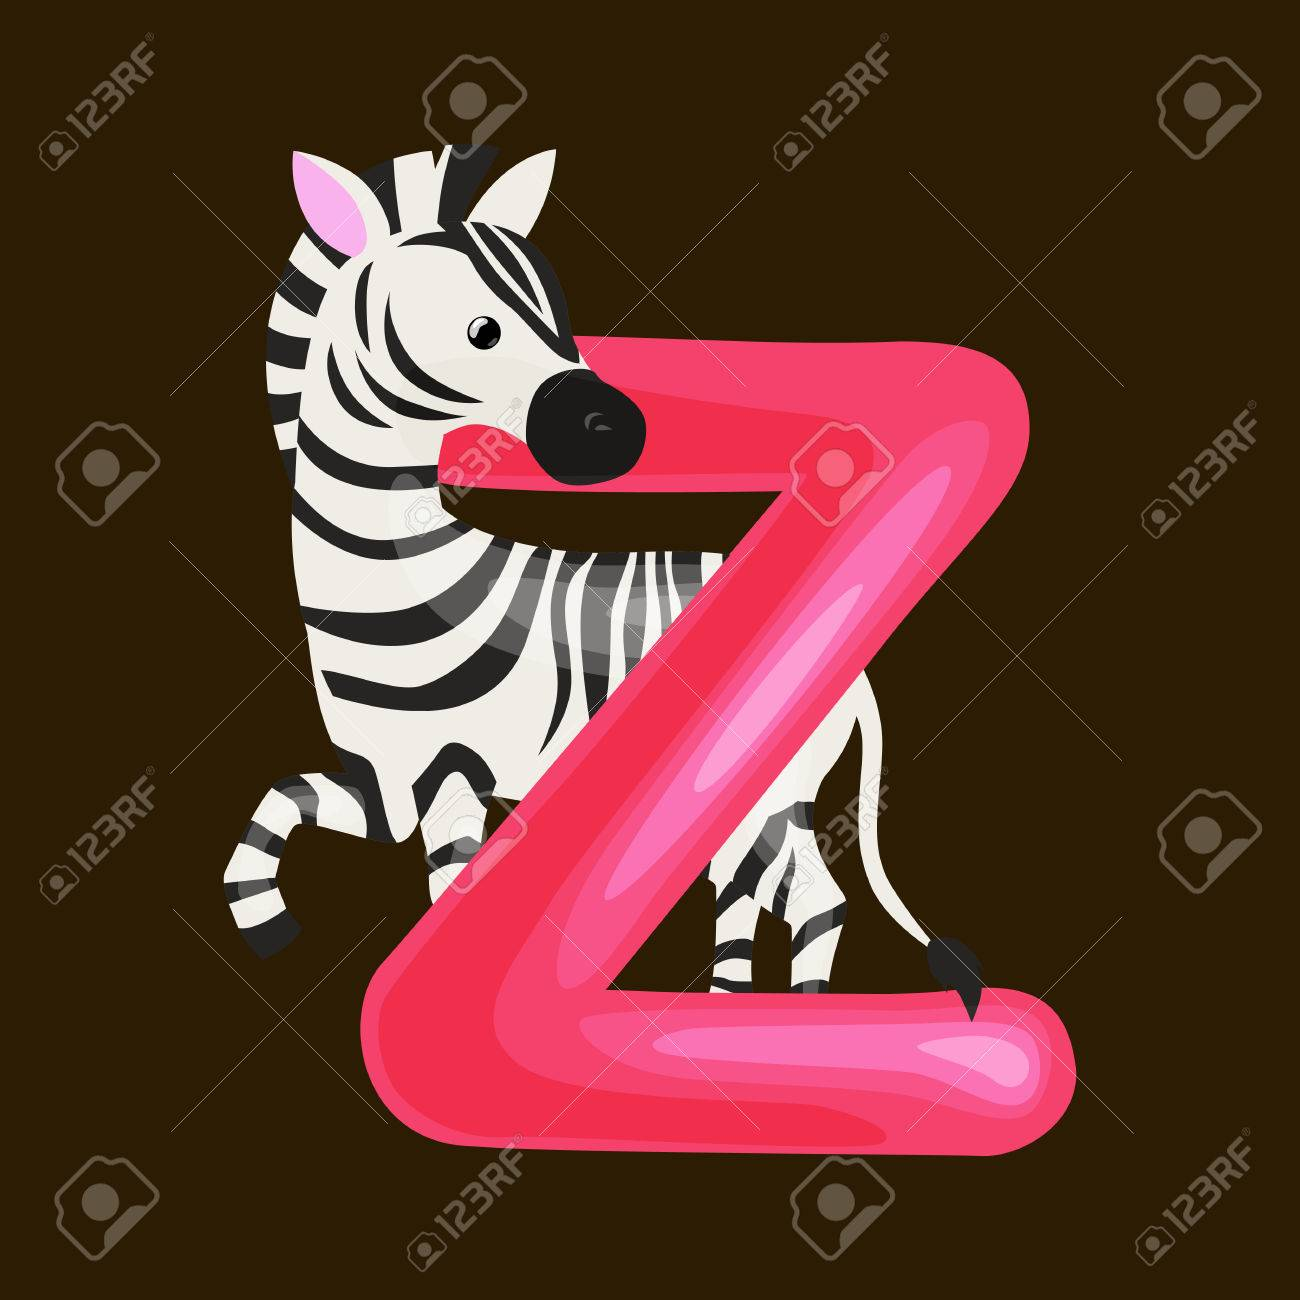 Vector   Zebra Animal And Letter Z For Kids Abc Education In Preschool.Cute  Animals Letters English Alphabet. Cartoon Animals Alphabet For Learning  Letters ...